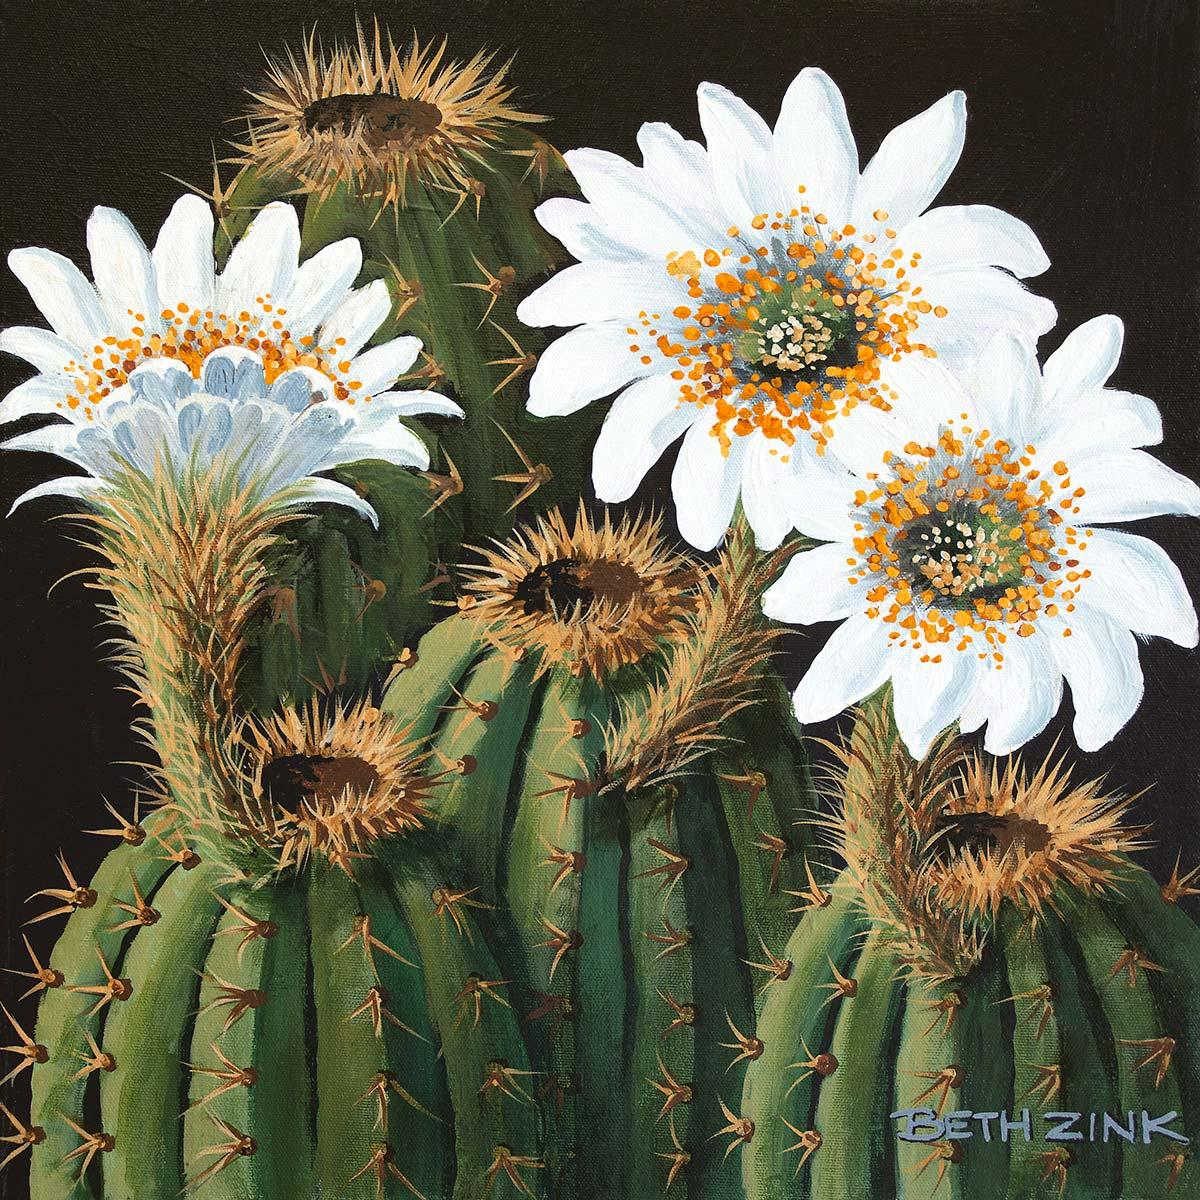 beth zink painting spiny cactus blooming white flowers